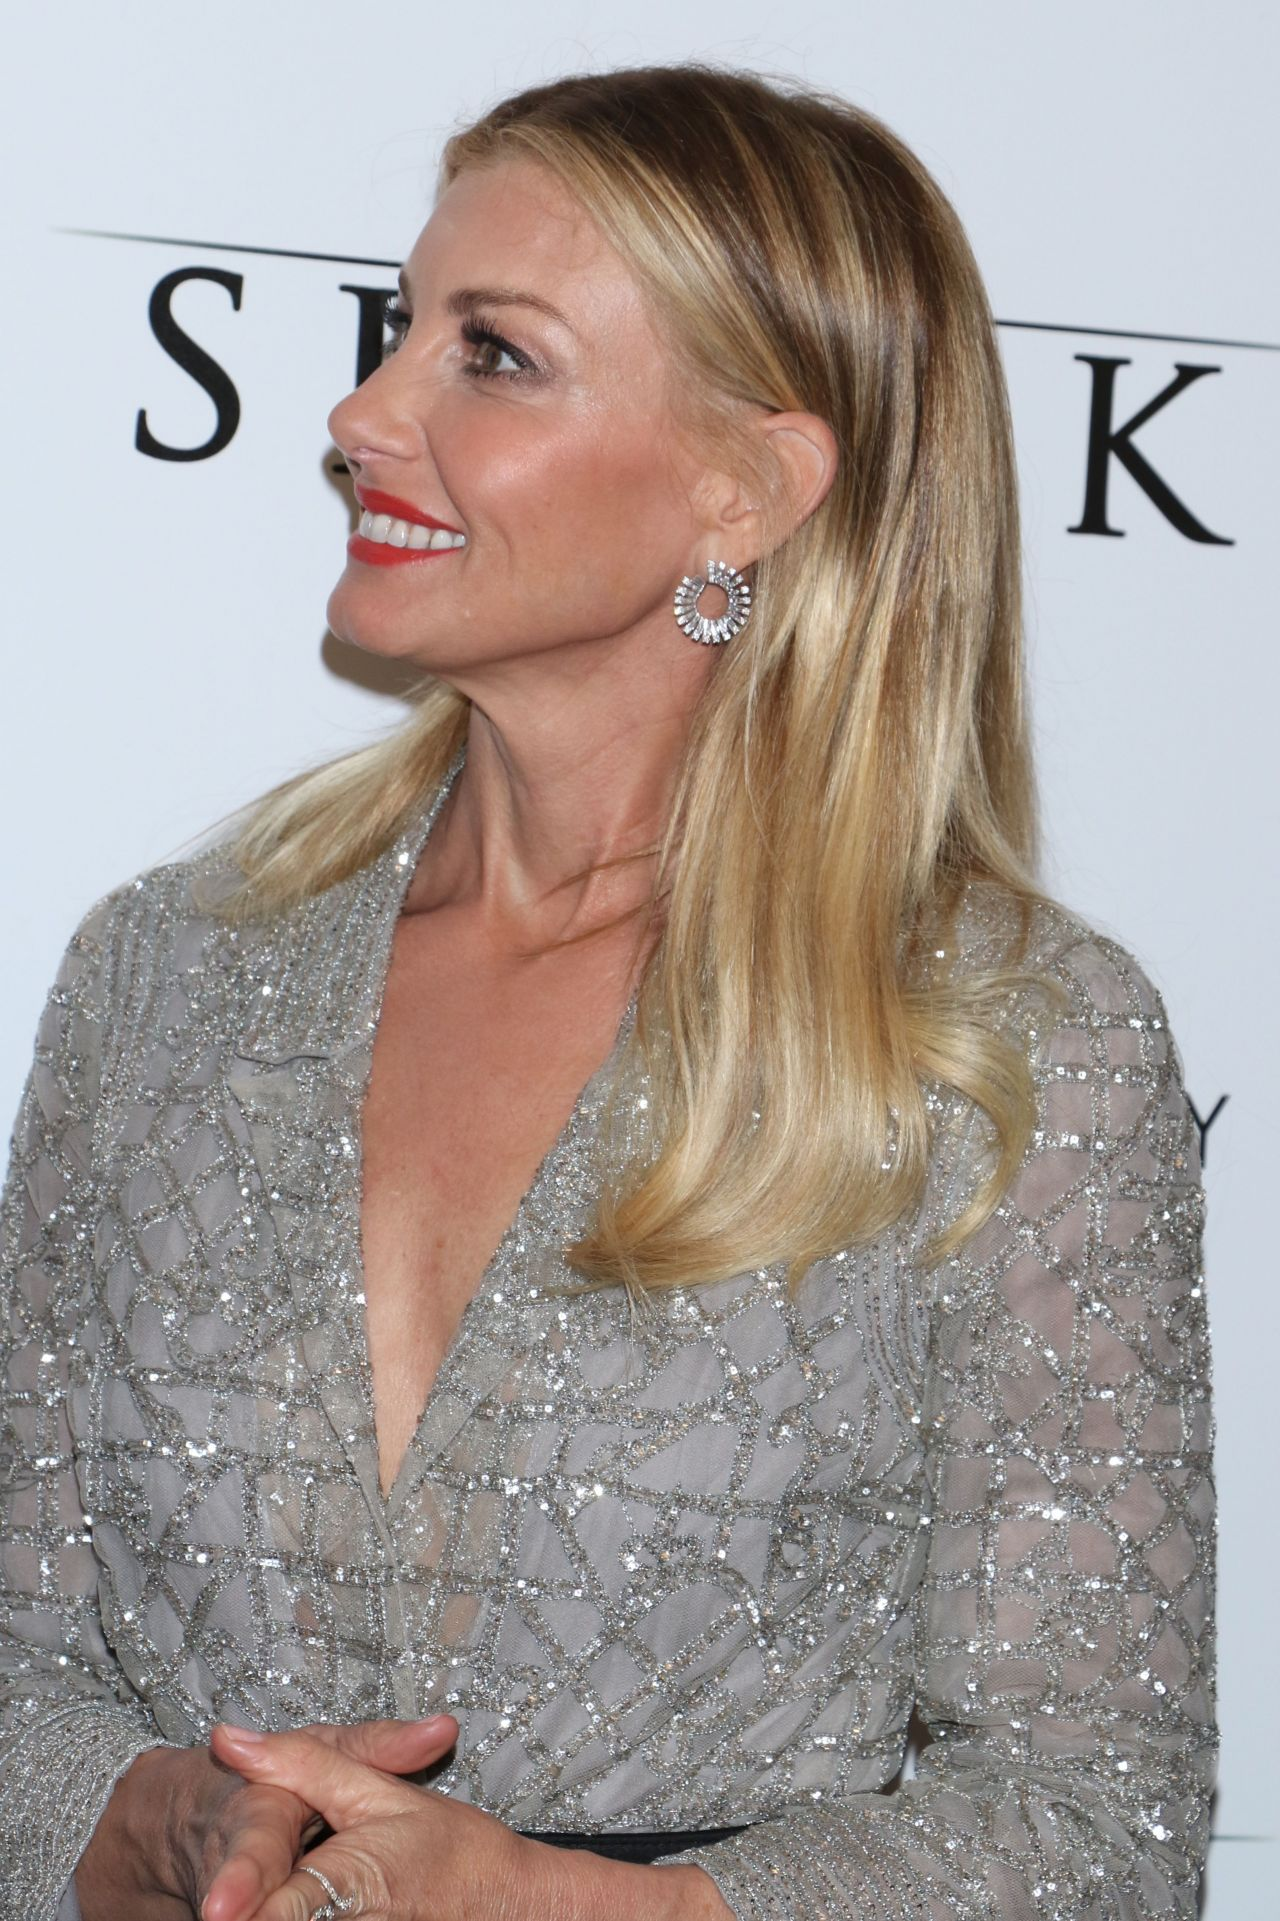 Faith Hill At The Shack Movie Premiere In New York 2 28